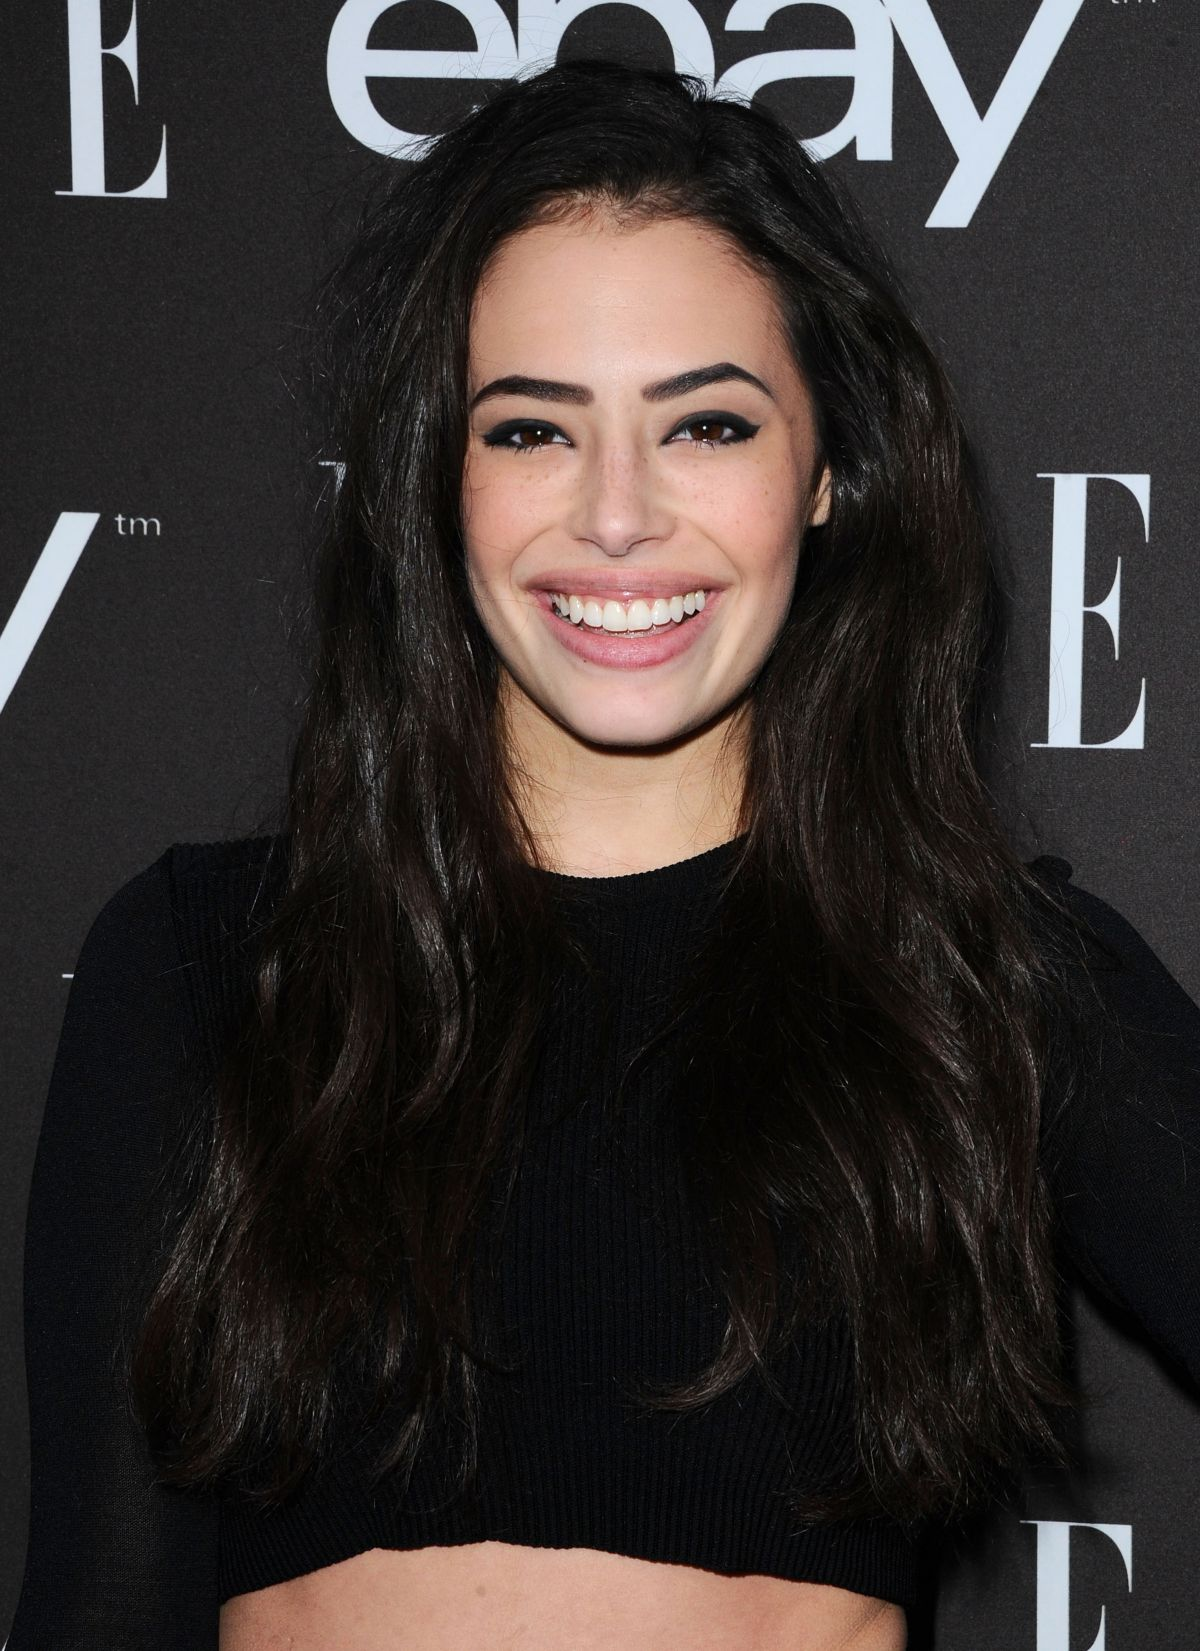 Chloe Bridges HD wallpapers, Desktop wallpaper - most viewed